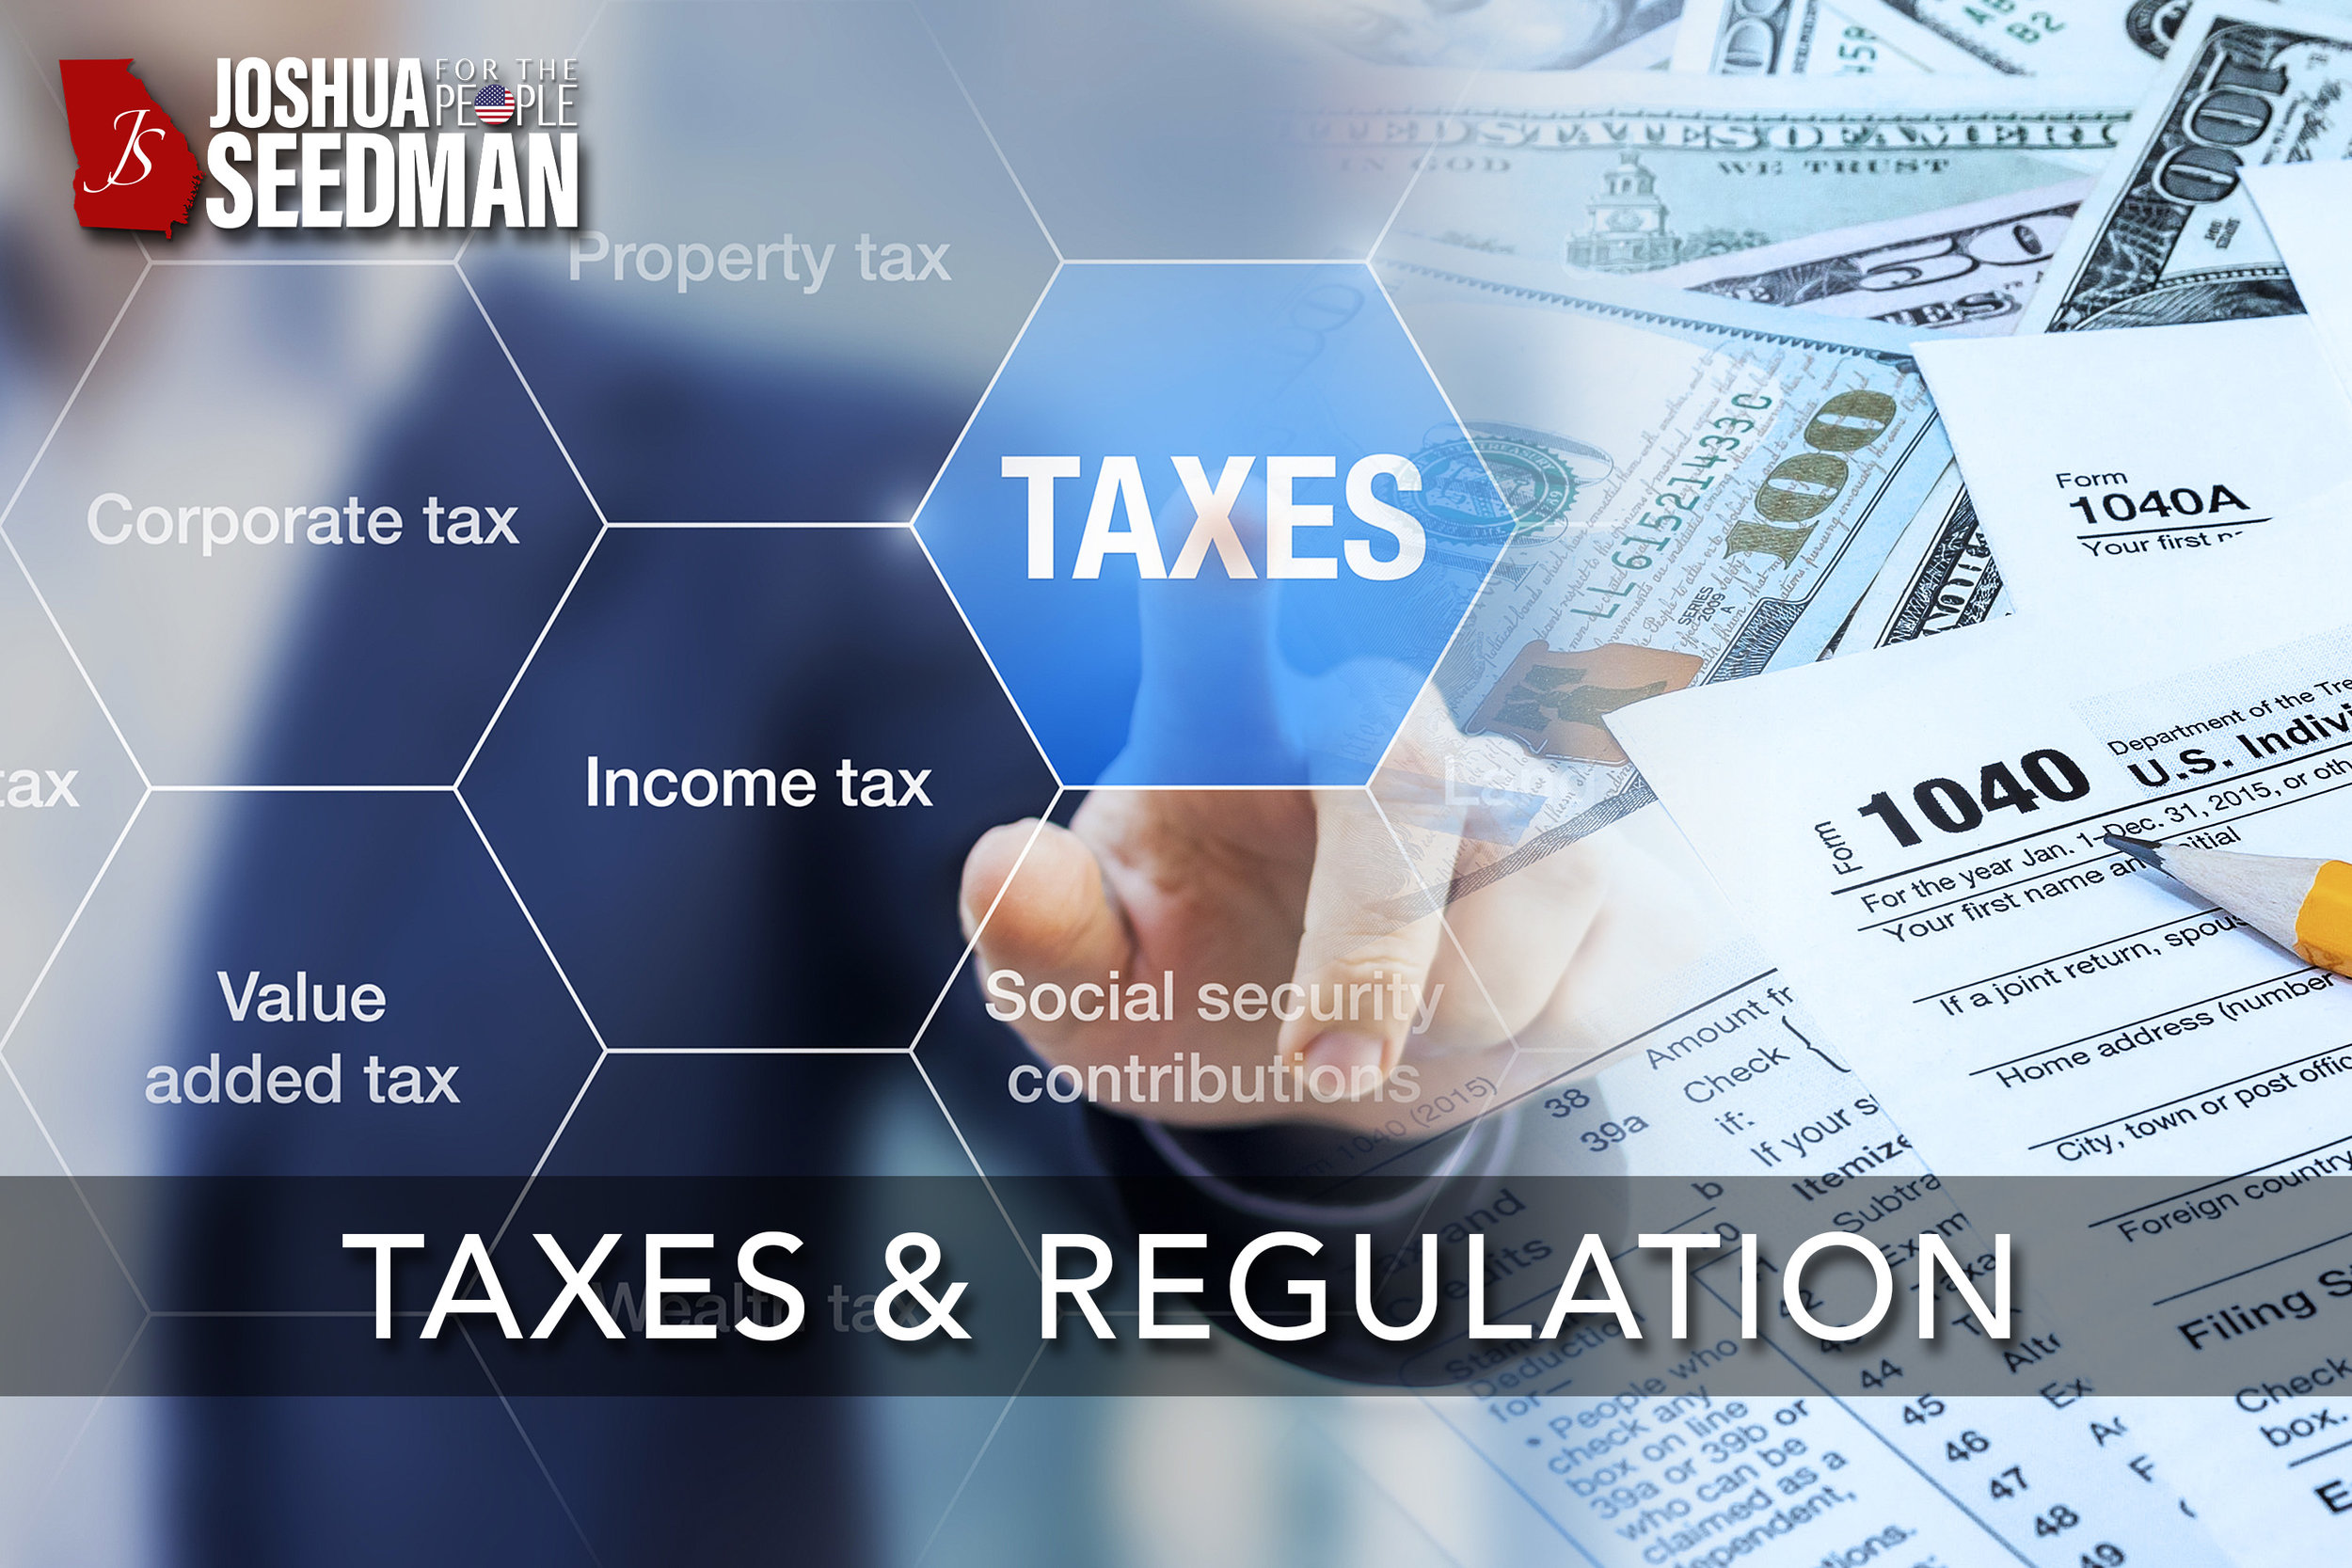 Taxes & Regulation